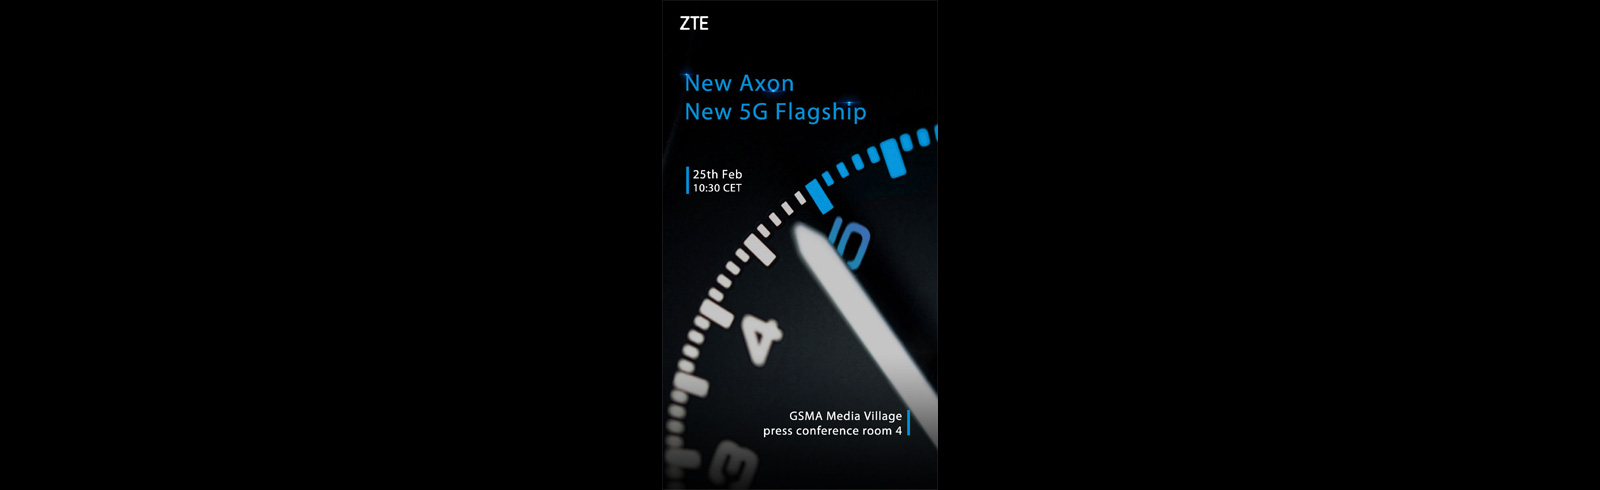 ZTE to unveil its 5G smartphone on February 25th